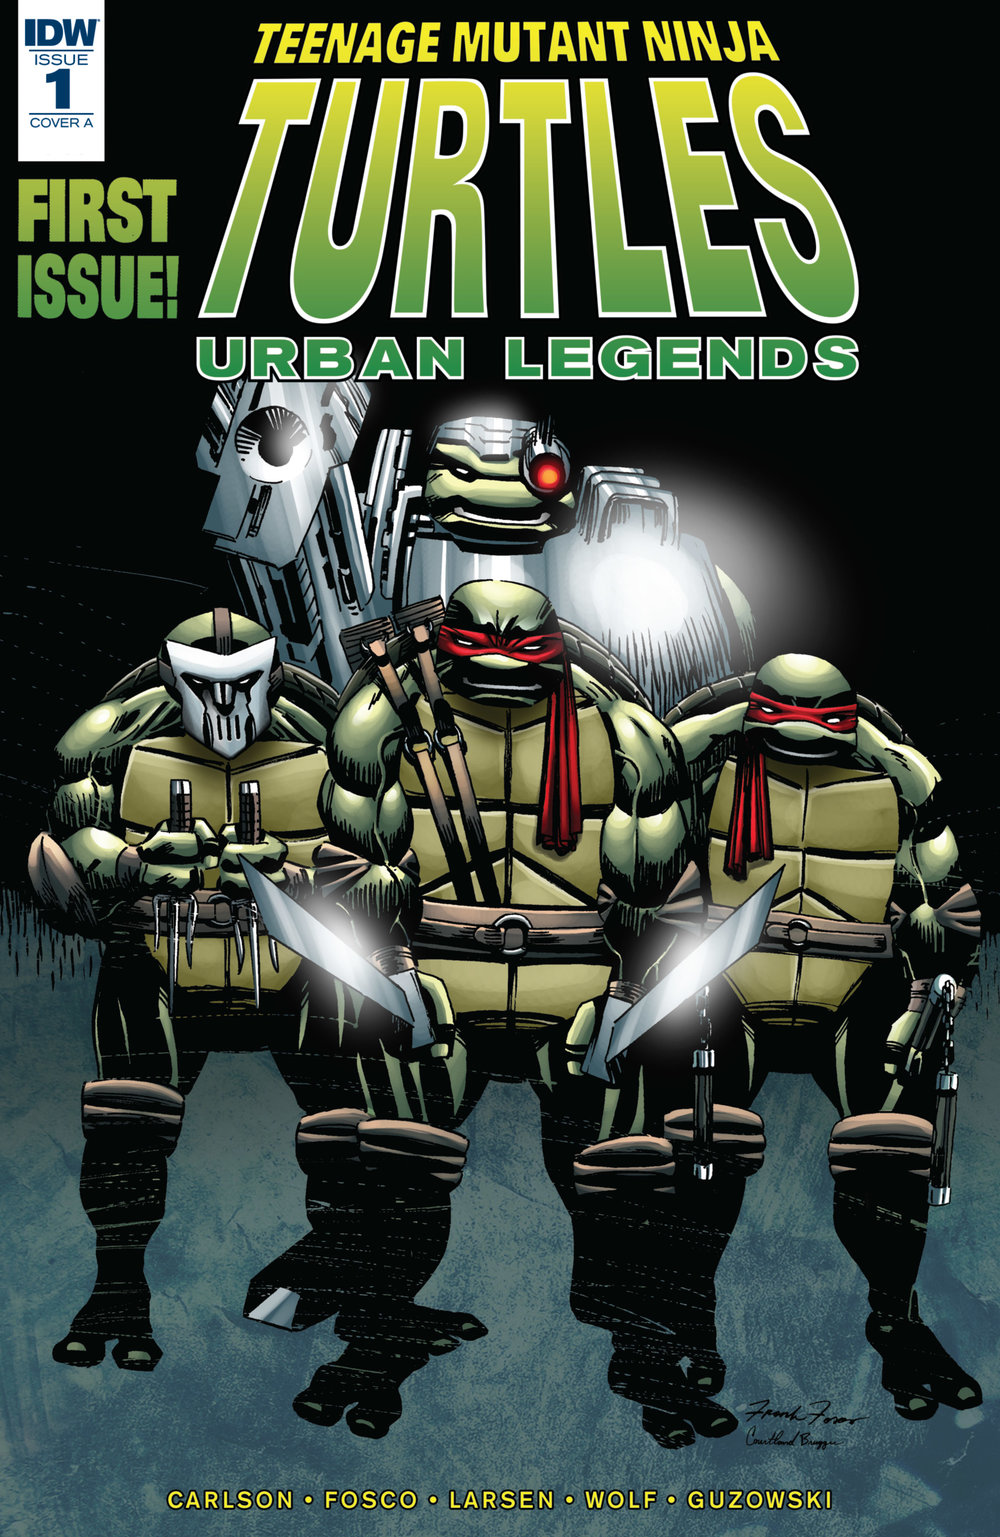 Teenage Mutant Ninja Turtles - Urban Legends 001-000.jpg